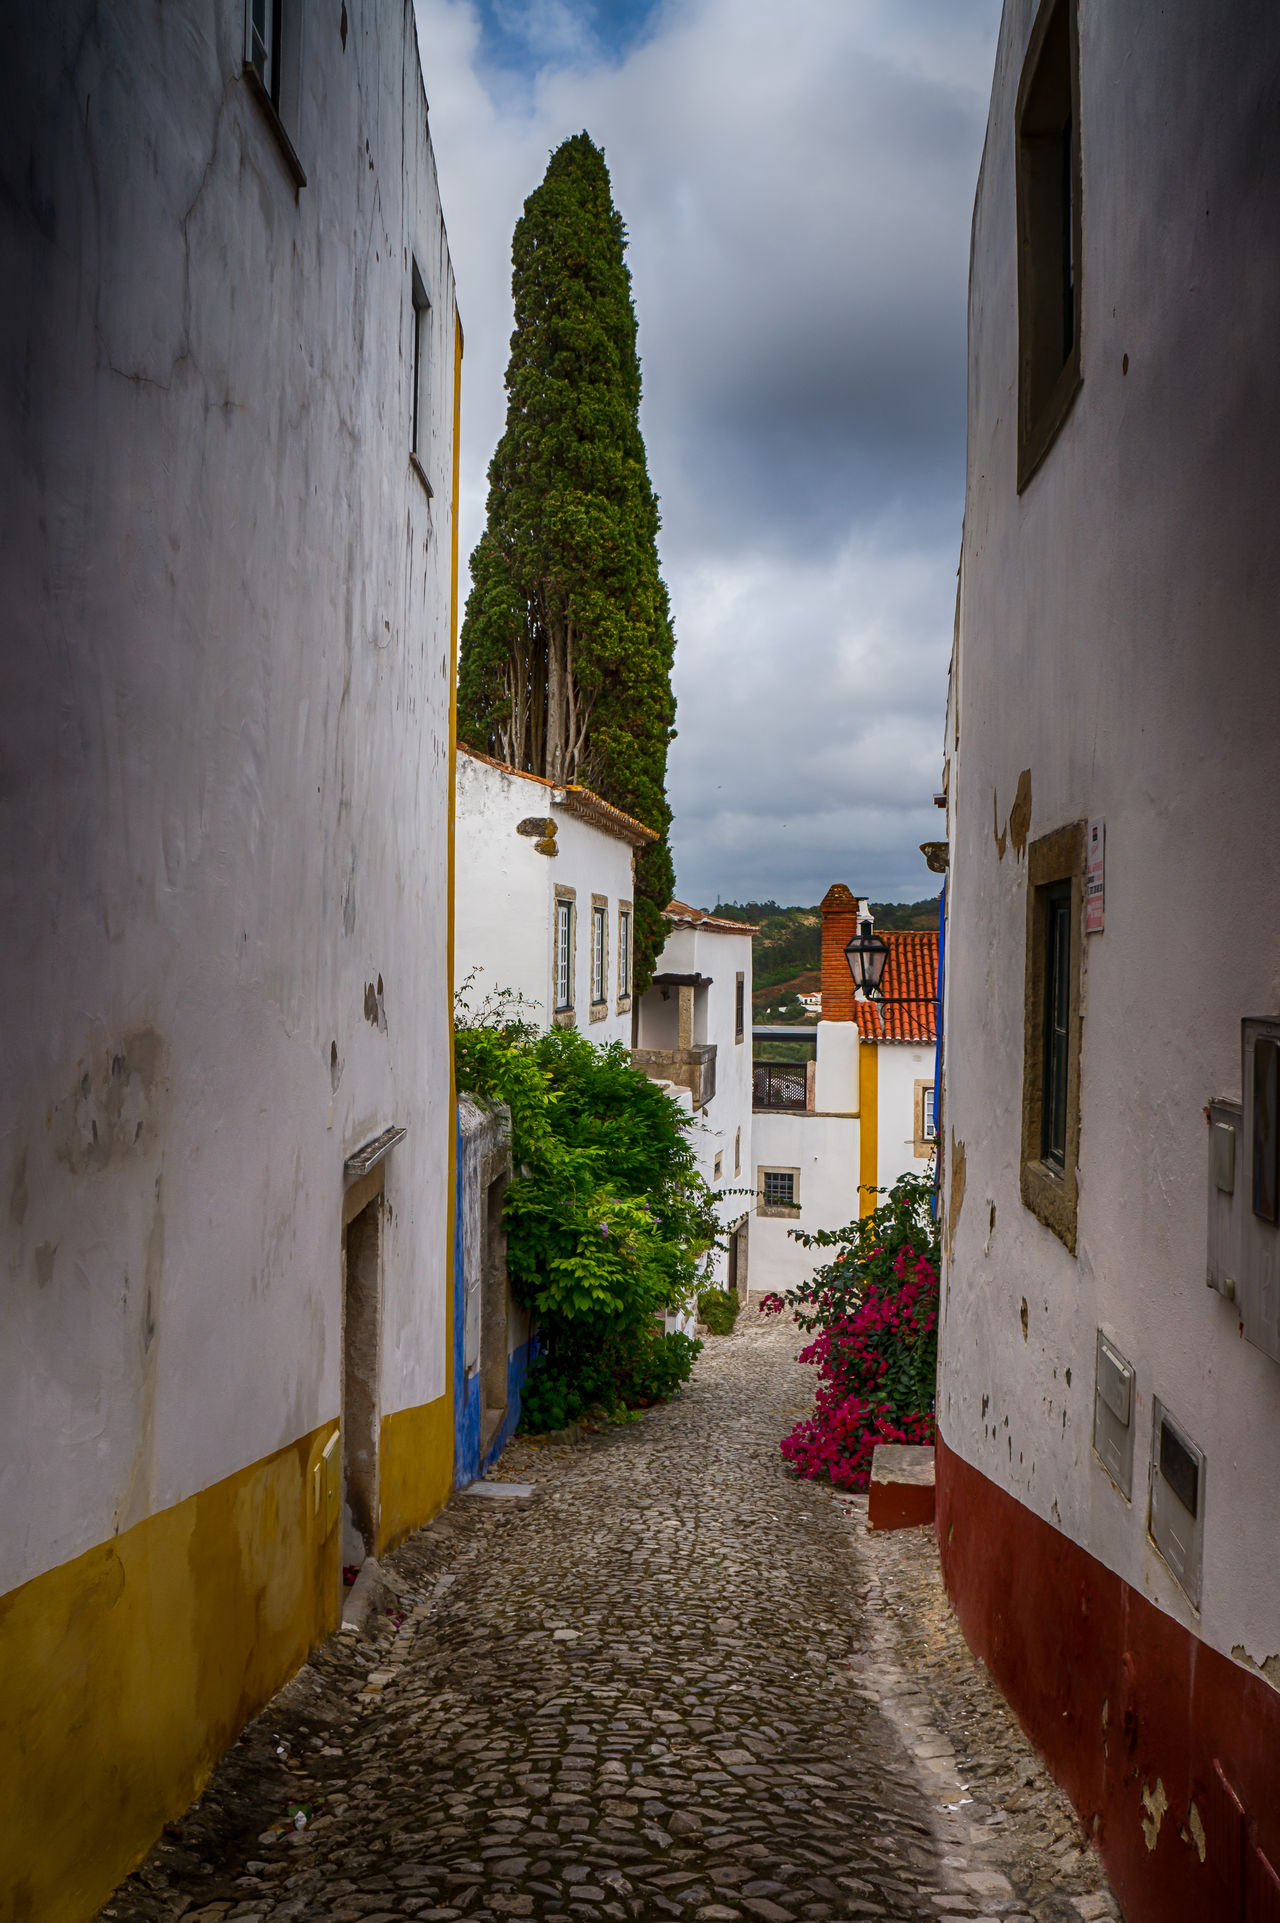 """Óbidos is a Portuguese town in the district of Leiria, in the Centre Portuguese region and close to the Atlantic Ocean coast. The name Óbidos comes from the Latin """"oppidum"""", which means """"fortified city"""". Definitely a """"must see destination"""" on your next trip to this surprising country. Find more here http://bit.ly/1NjgnA5 Beautiful Building Exterior Cities City Discovering Europe Exterior Leiria Medieval Narrow Photography Places Portugal Street Town Travel Traveling Visiting Óbidos"""